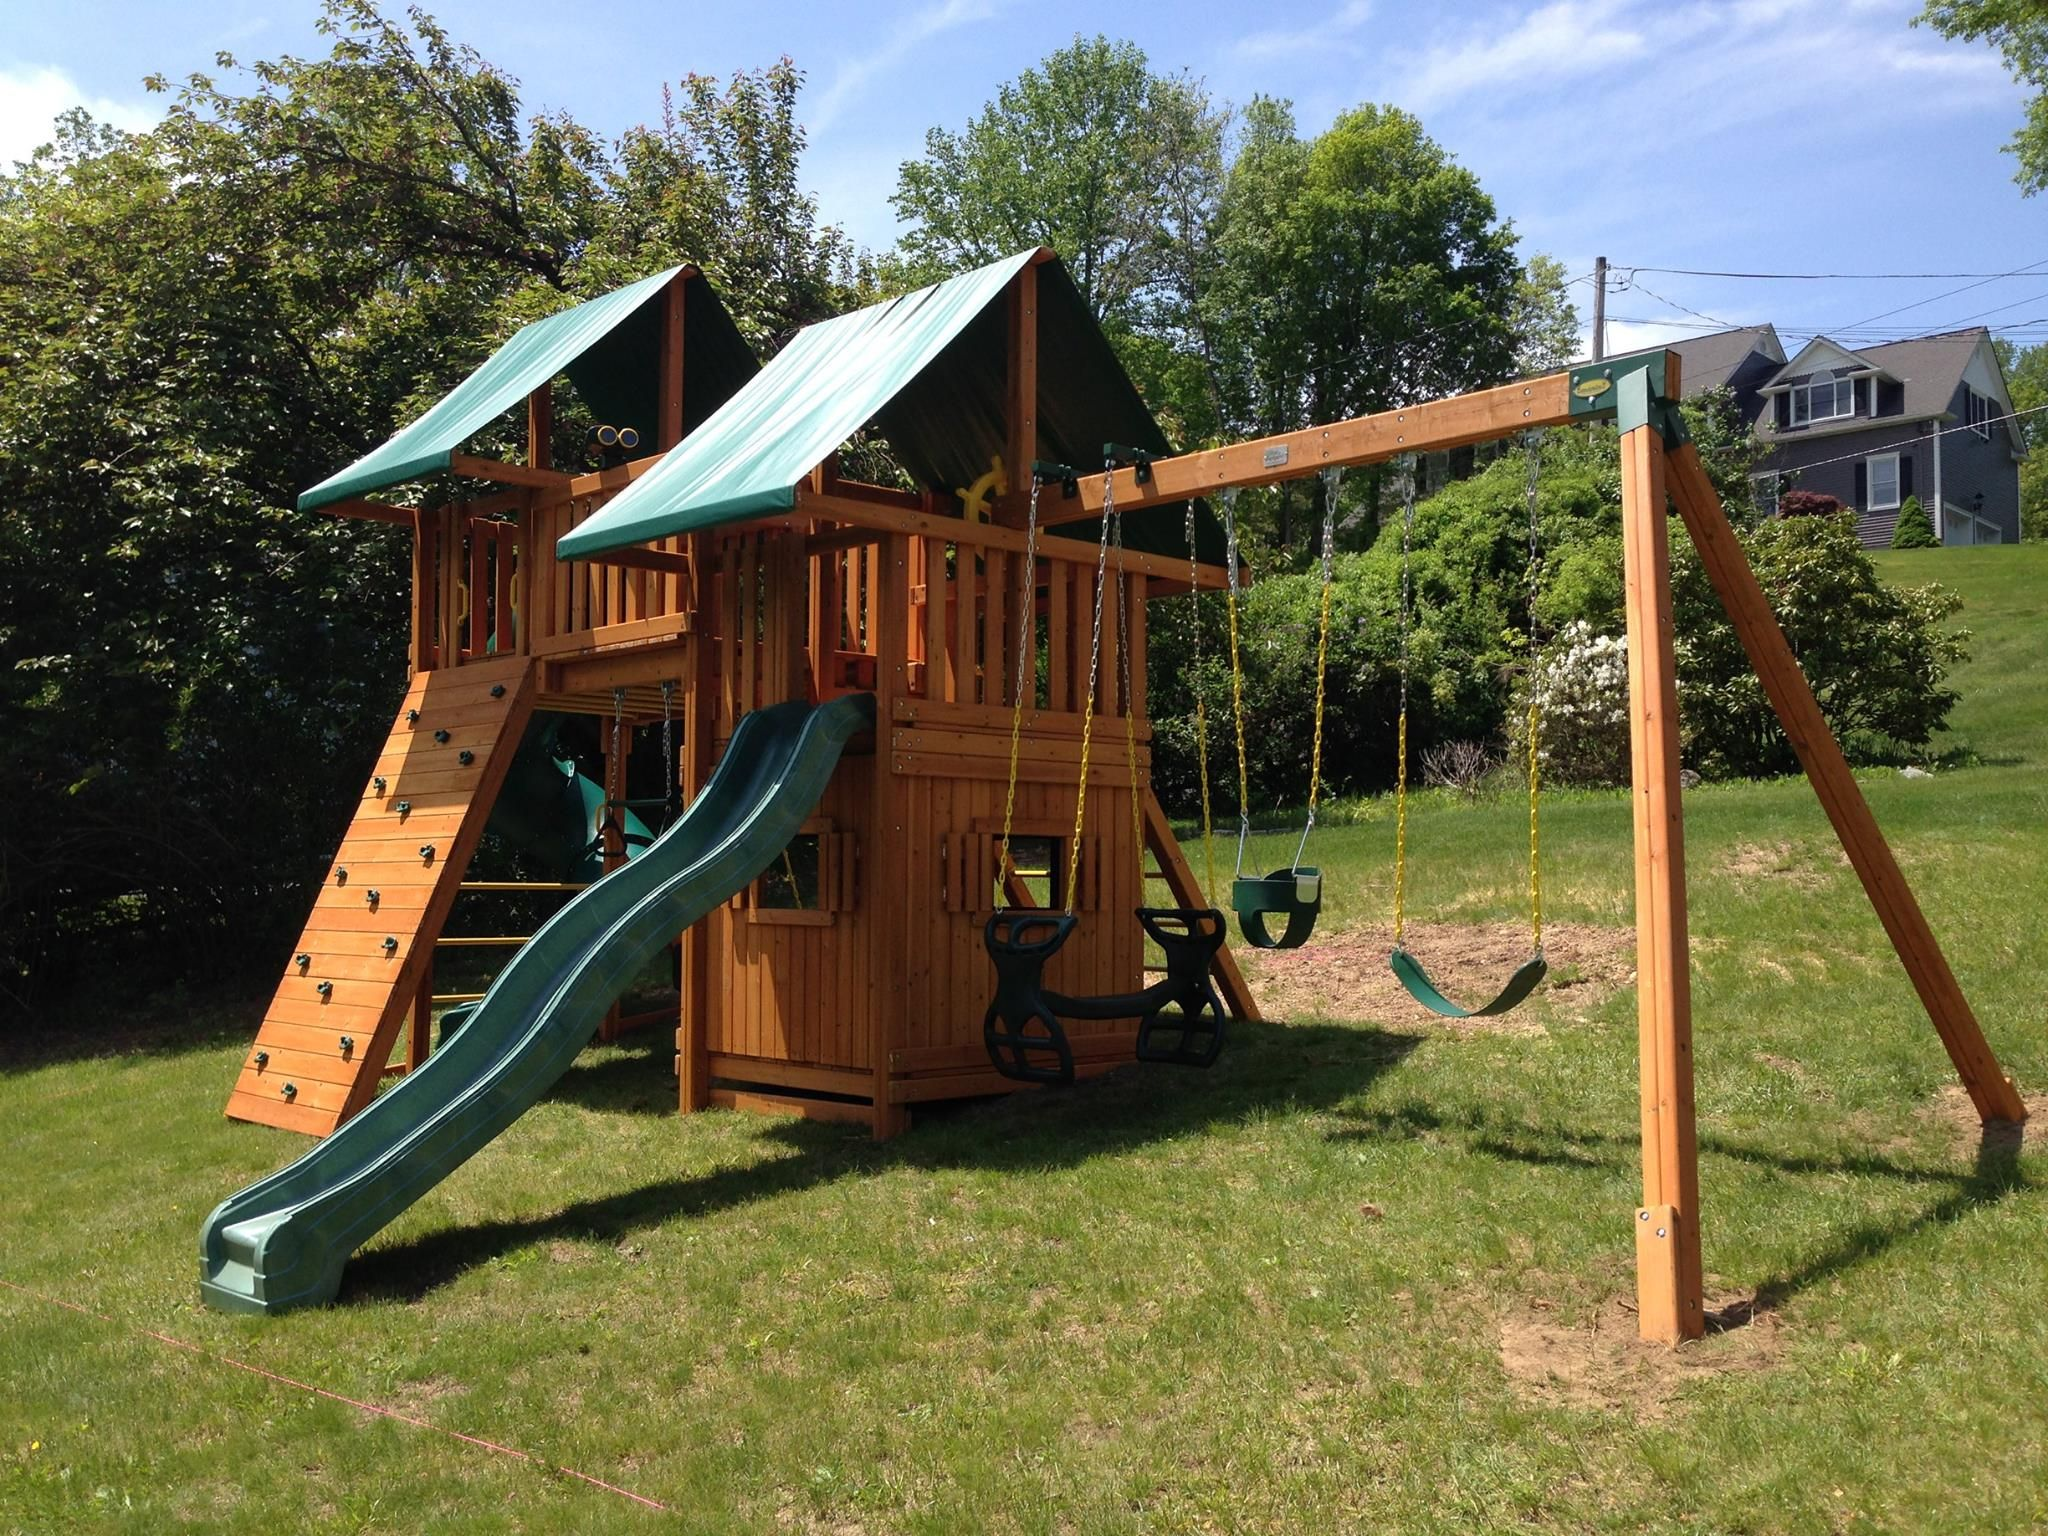 Wooden Swing Sets Add So Much Joy To A Backyard This Fantasy